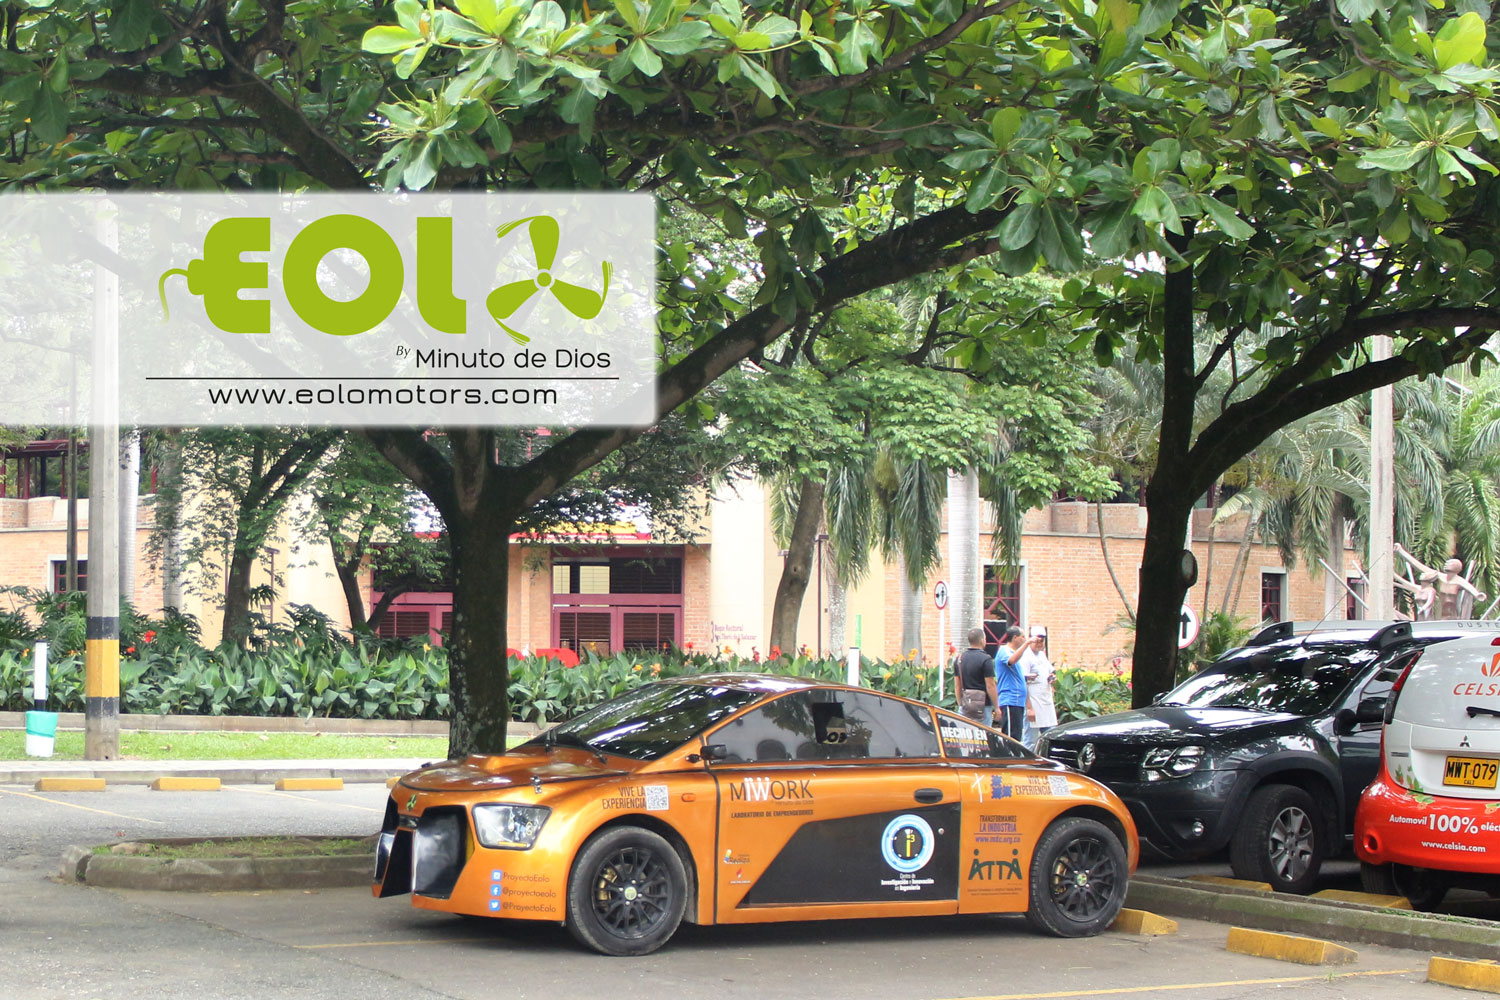 movilidad sostenible, eolo, tecnologia, carro electrico